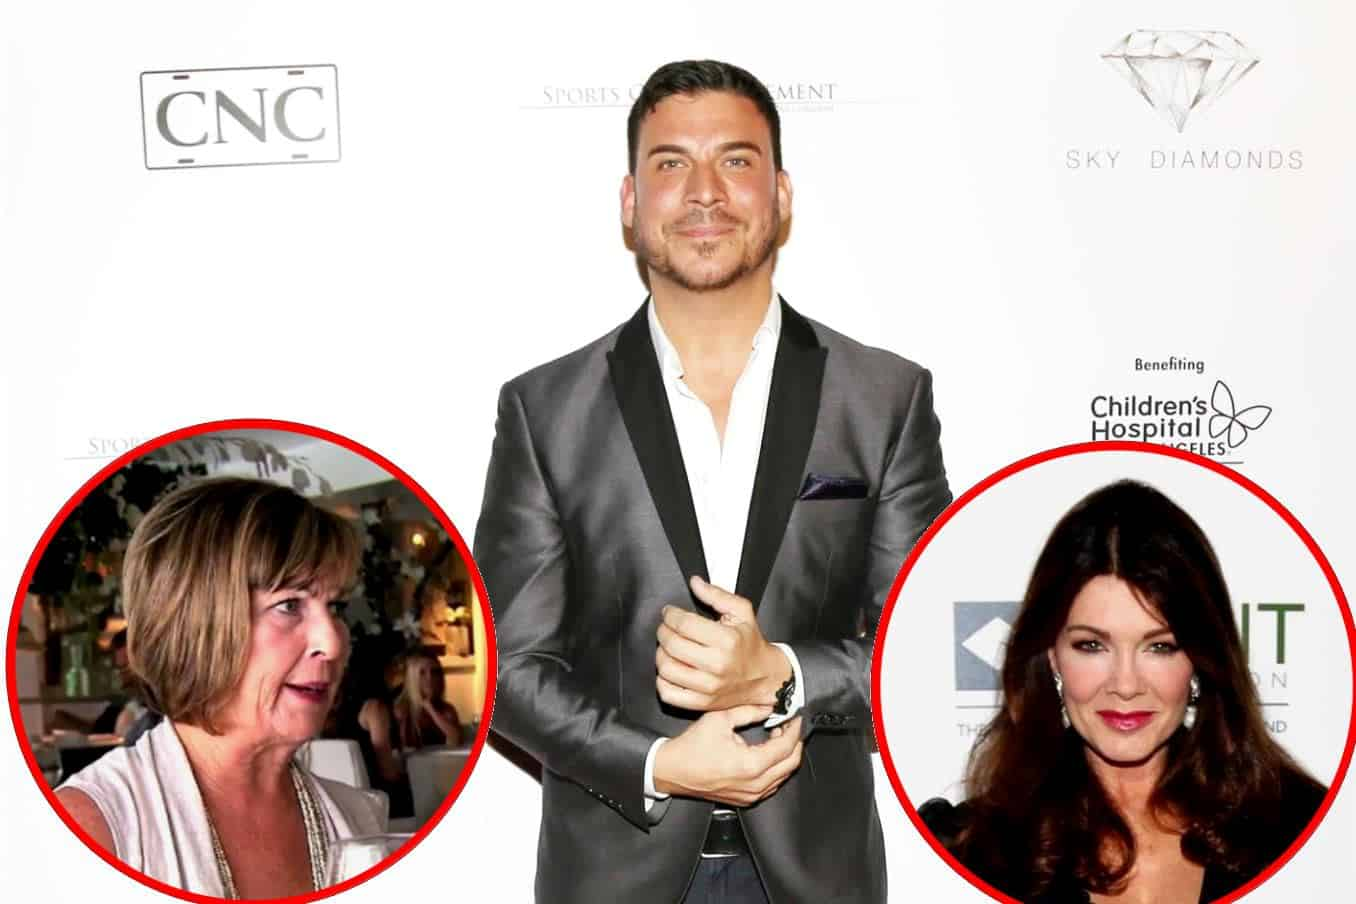 Vanderpump Rules' Jax Taylor Reveals the Real Reason He Won't Reconcile With His Mom as Lisa Vanderpump Explains Why She Wanted to Reach Out to Jax's Mom